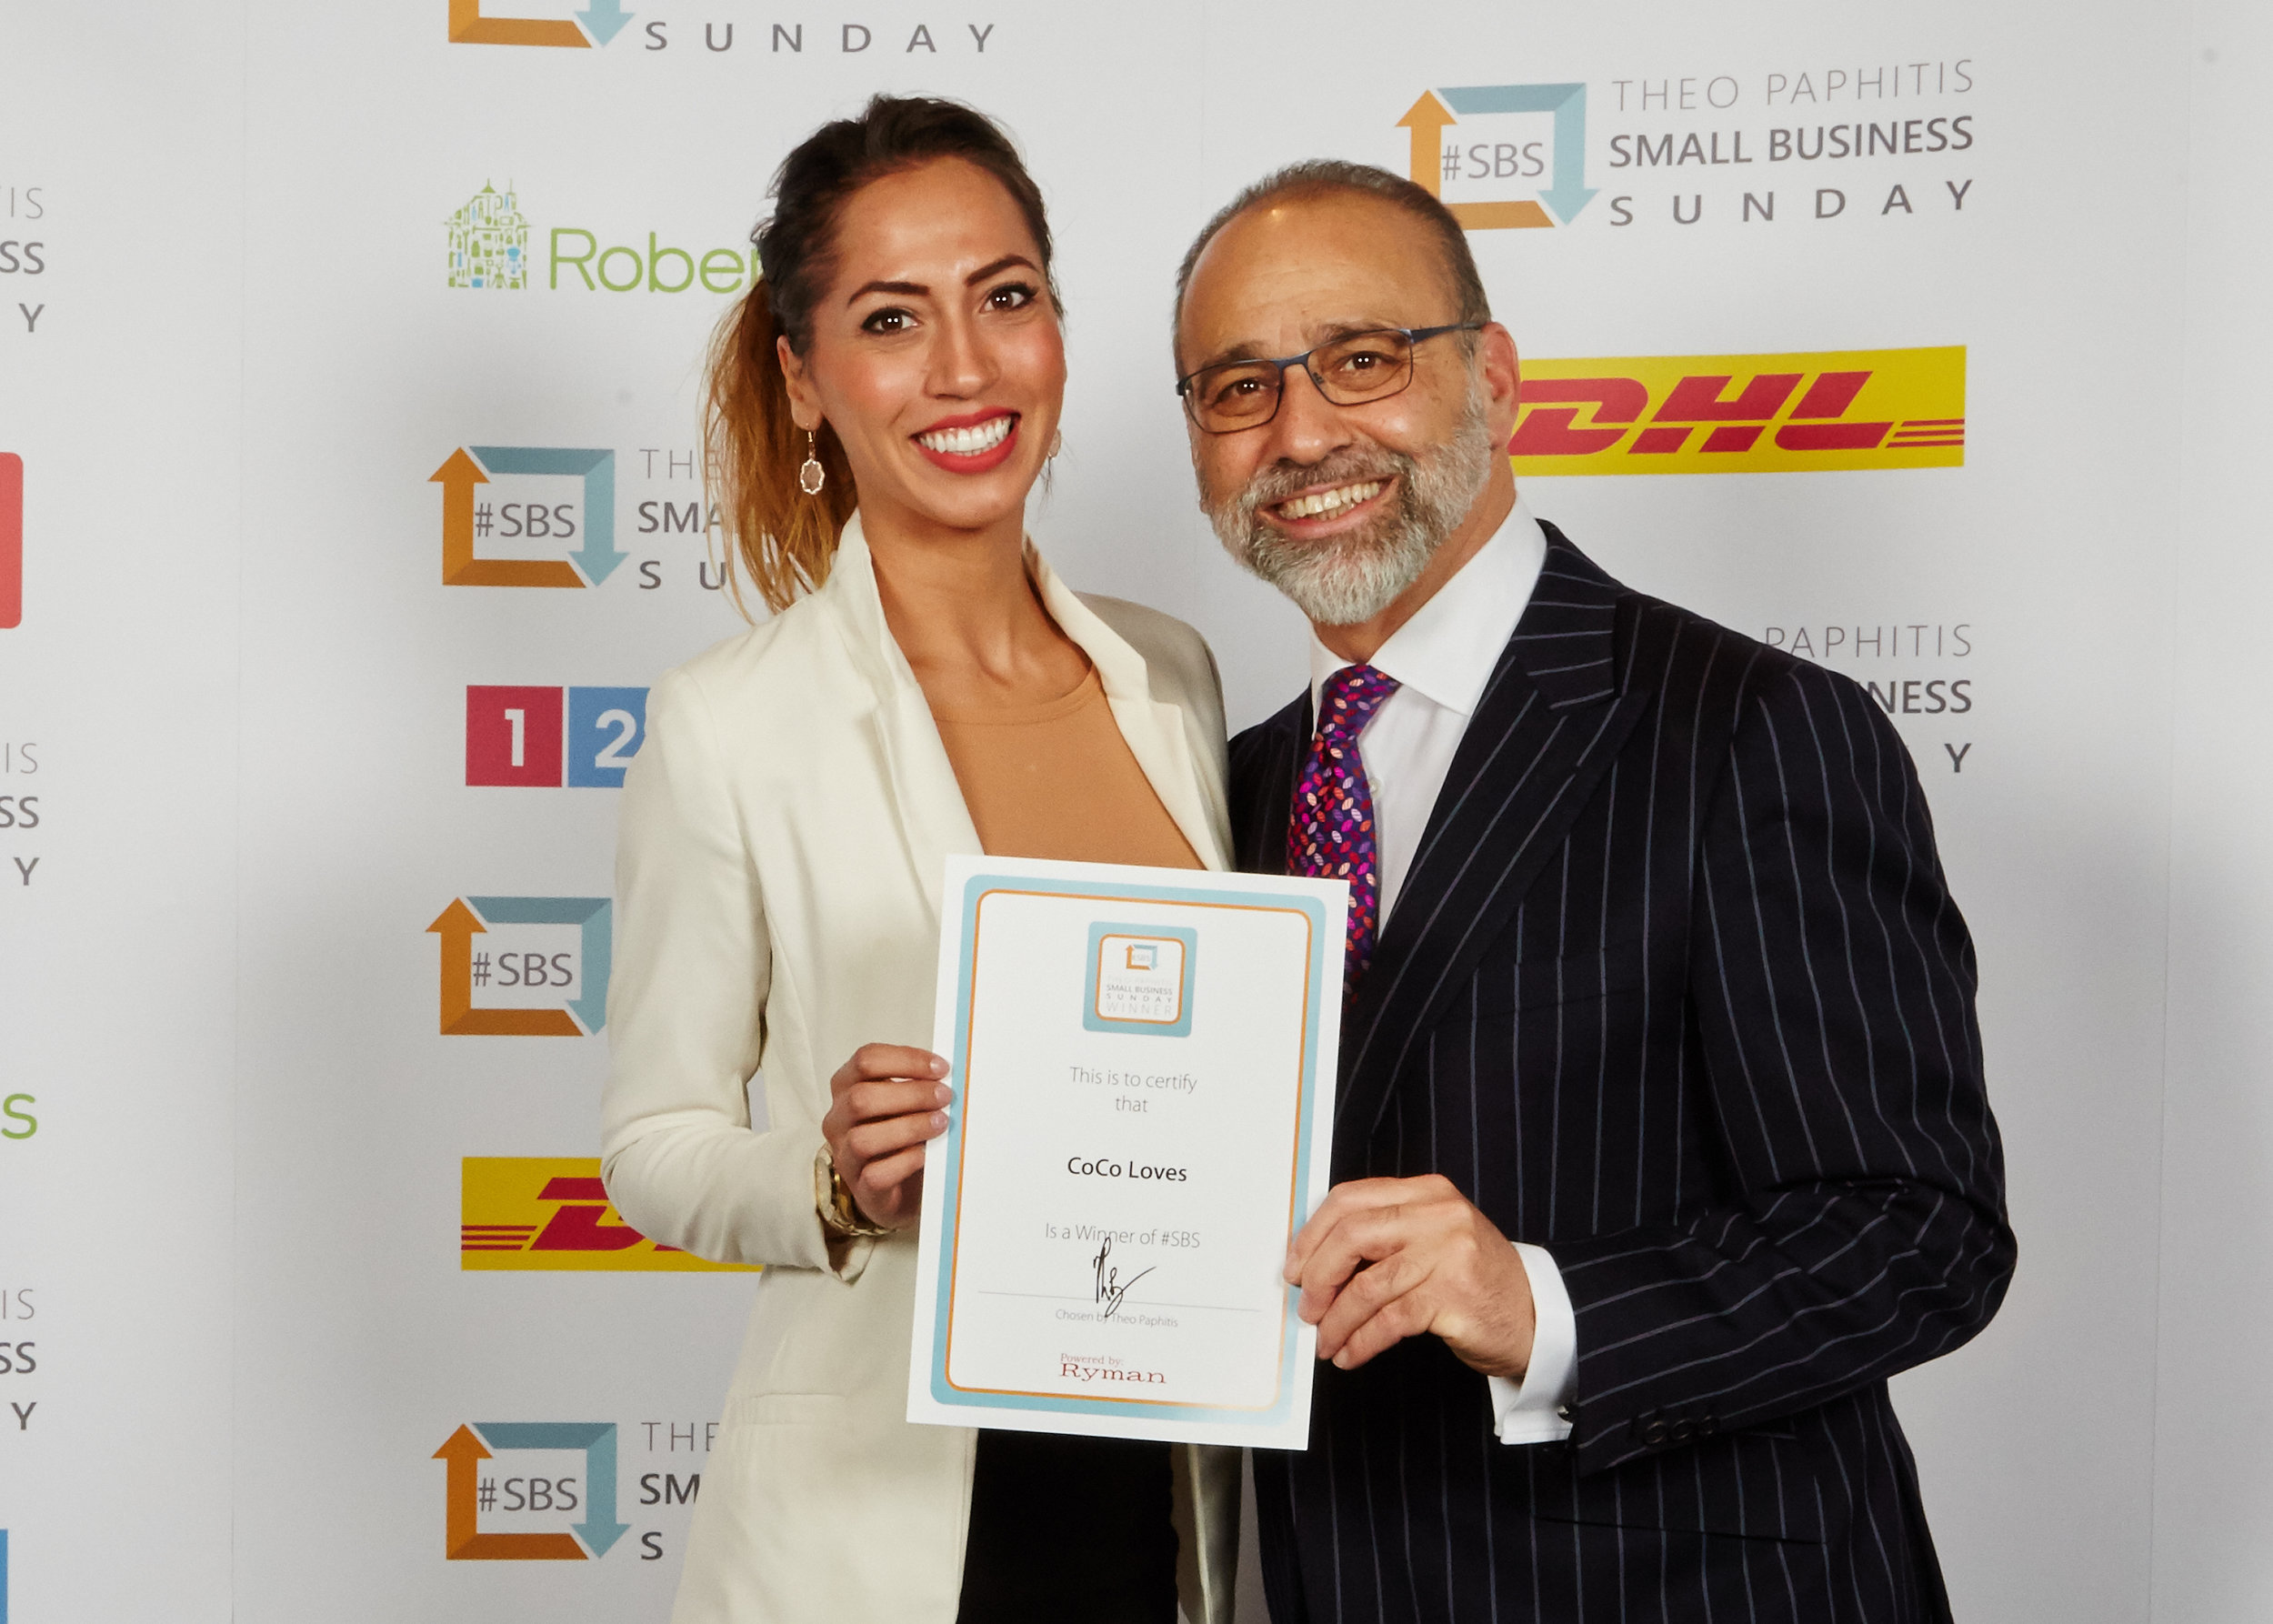 CoCo Loves & Theo Paphitis